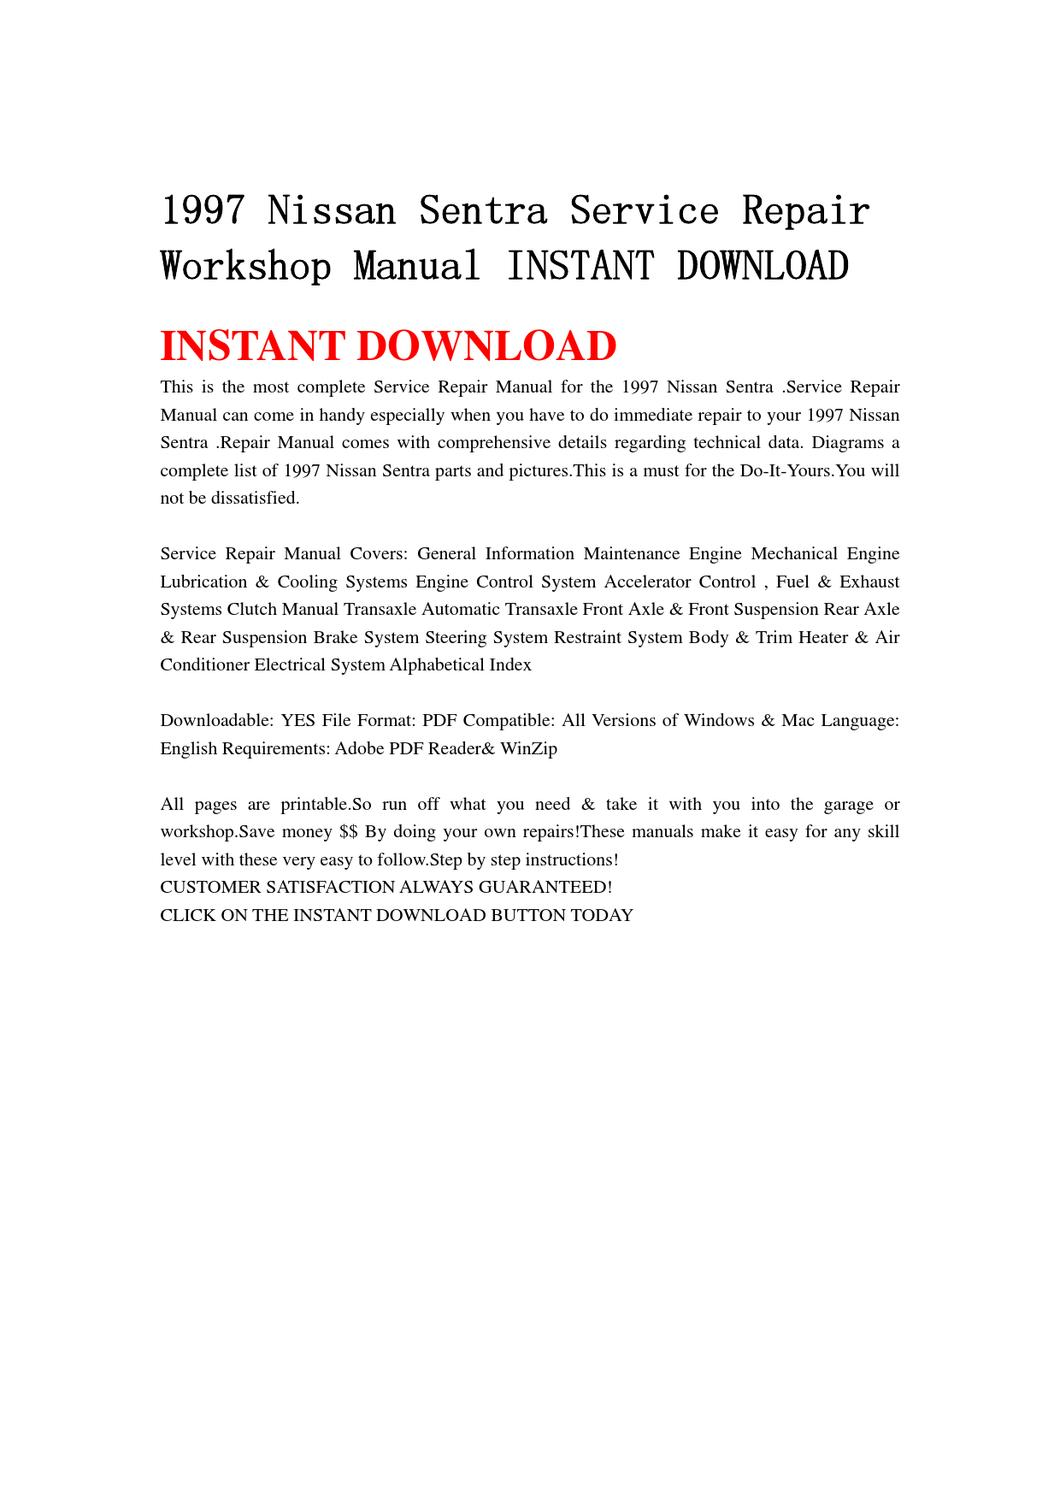 1997 Nissan Sentra Service Repair Workshop Manual INSTANT DOWNLOAD by chen  wei - issuu